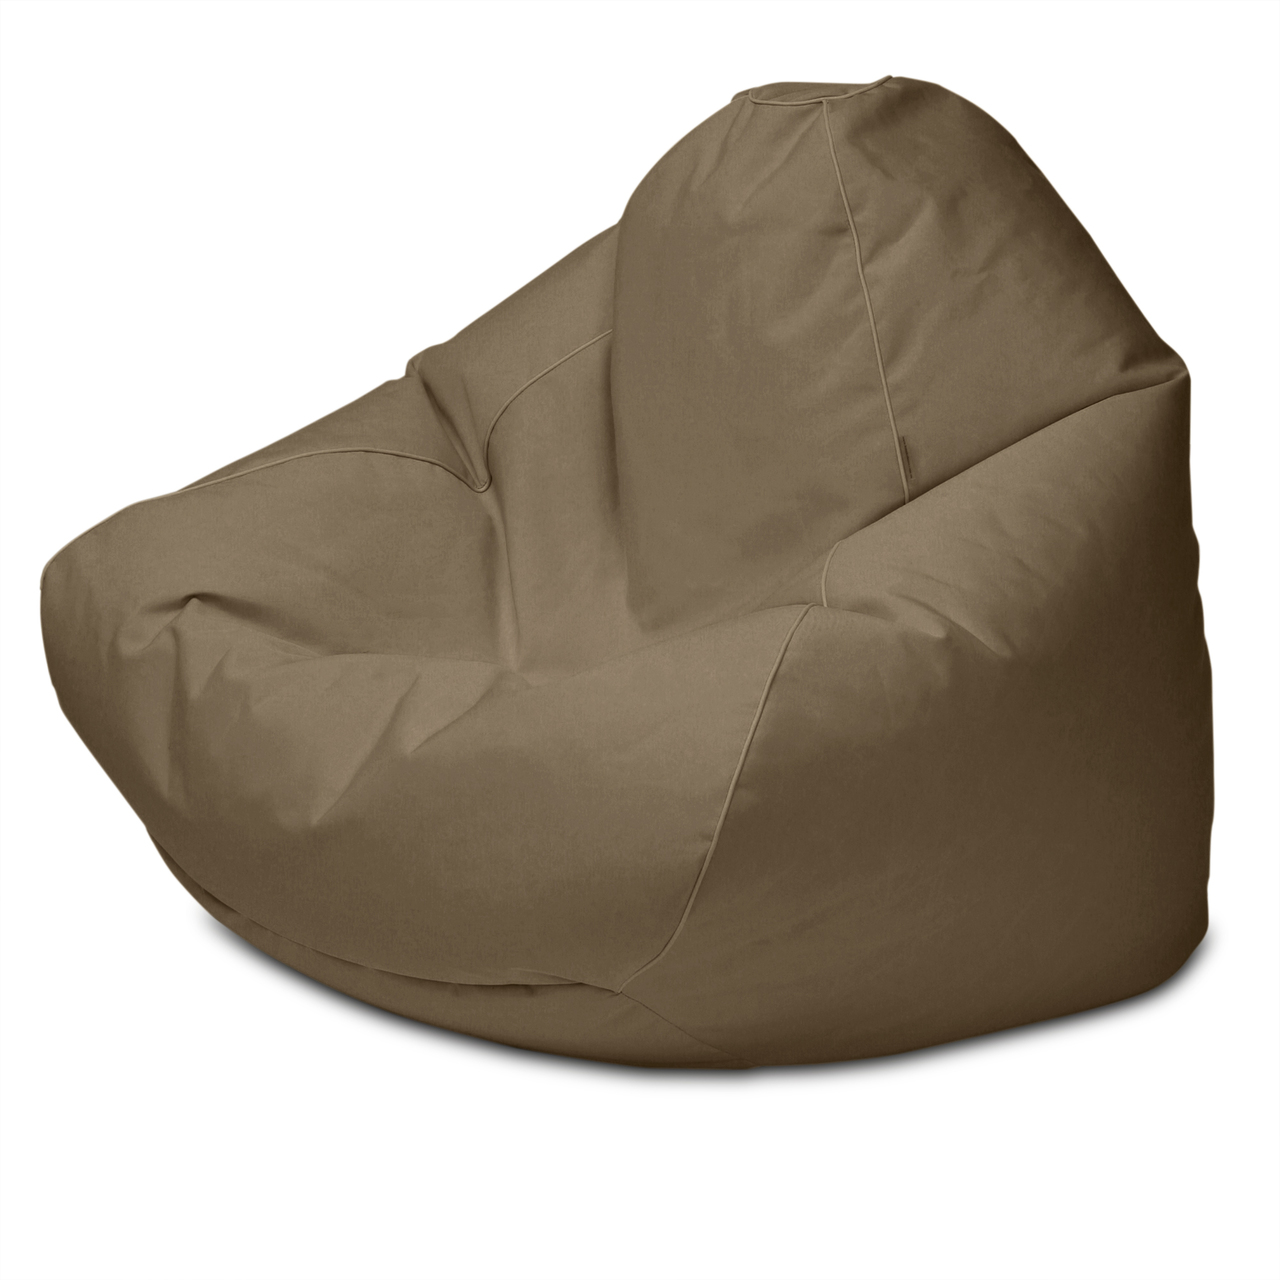 Sunbrella Outdoor Queen Size Bean Bag in linen tweed